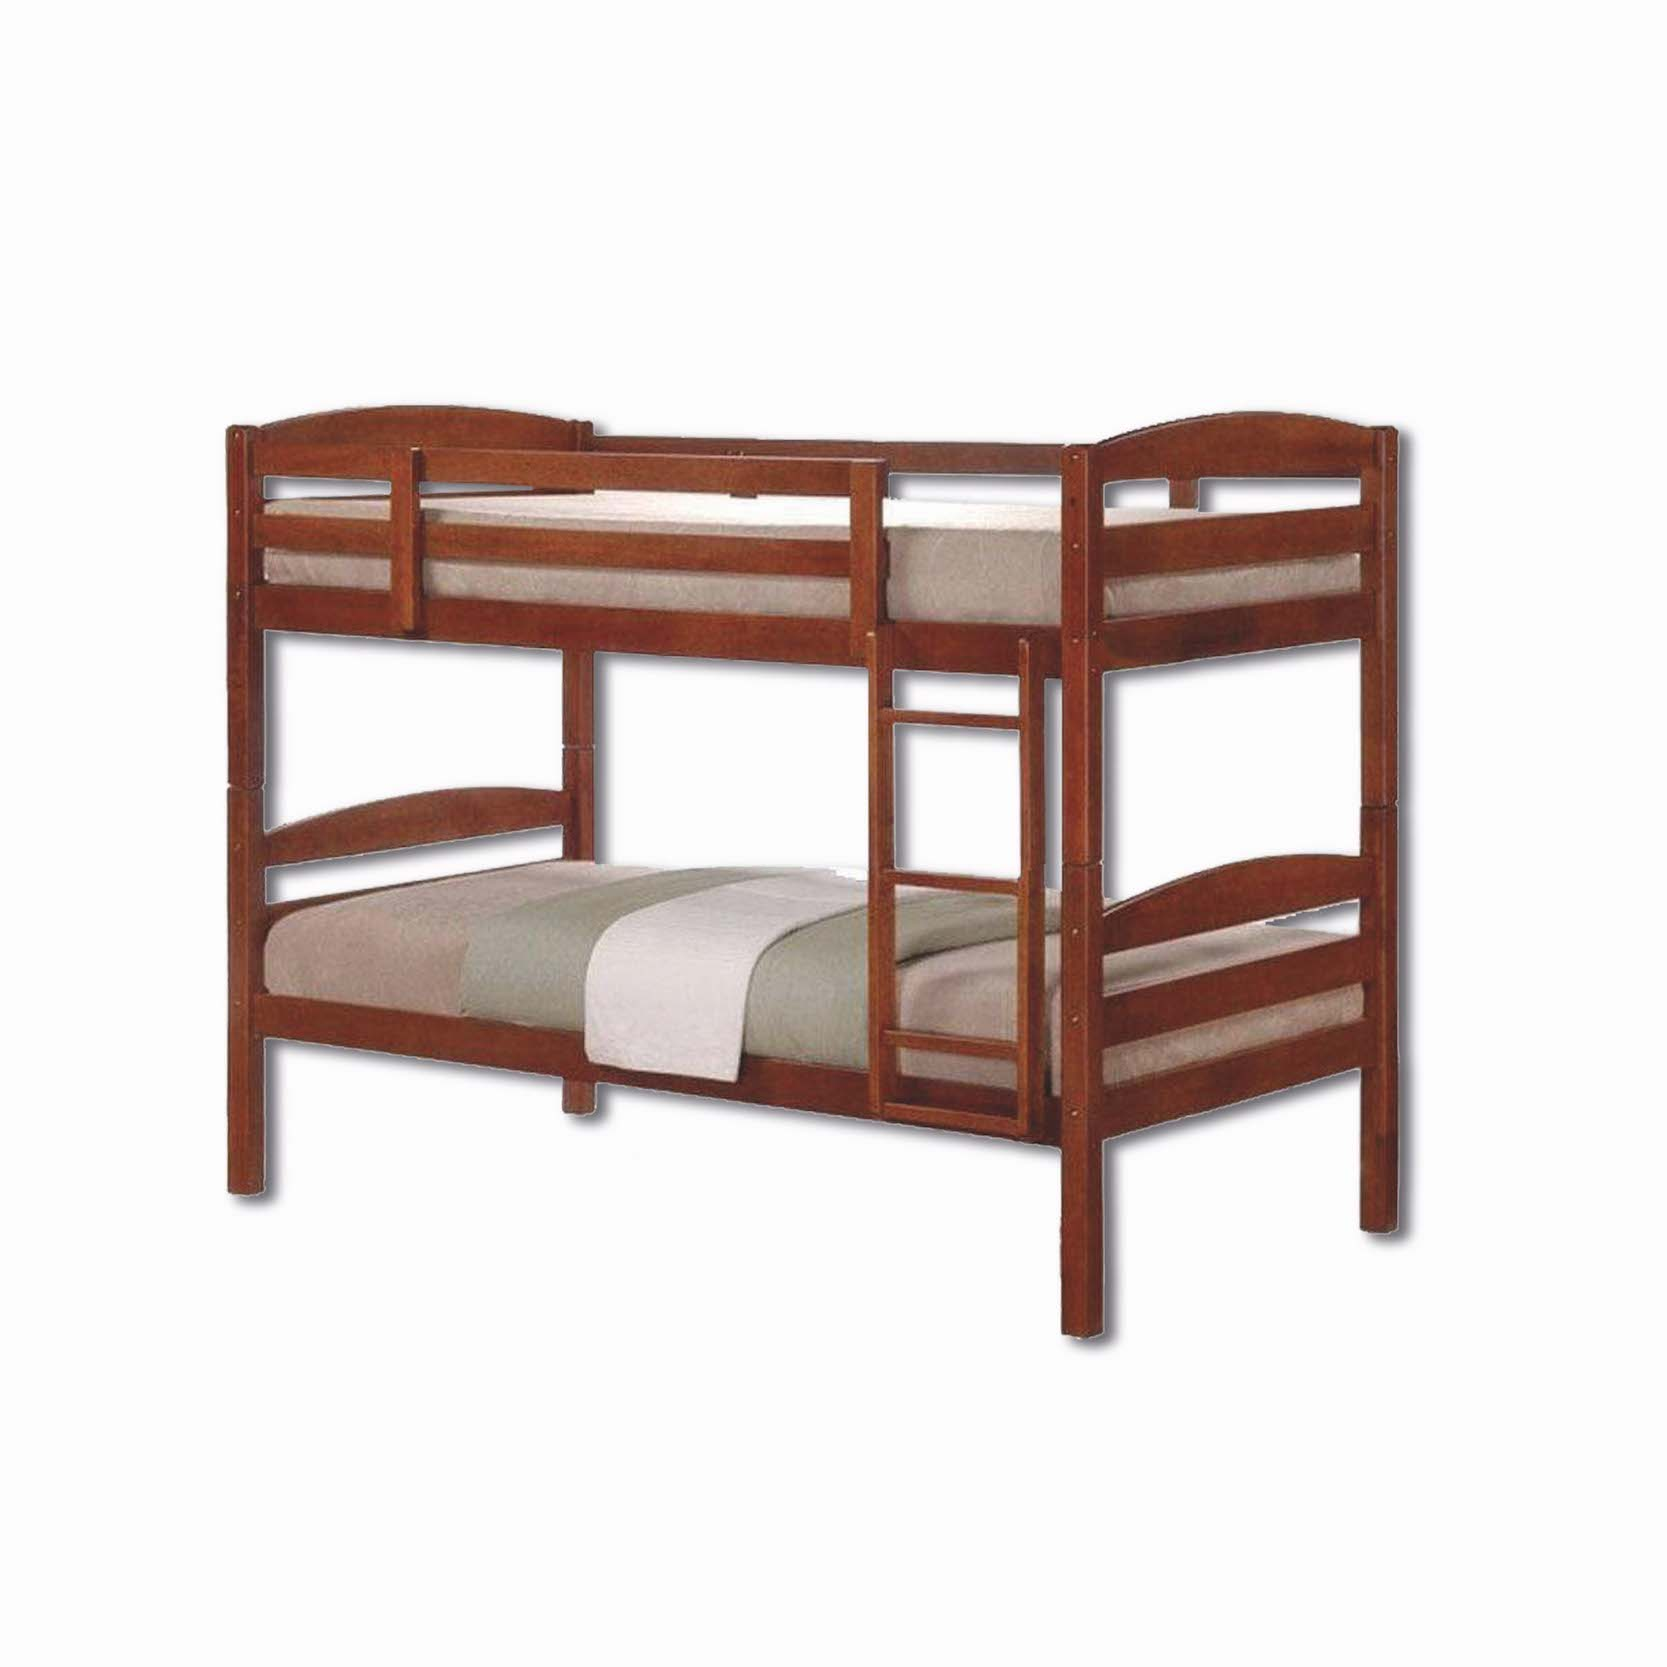 Single Bunk Bed Frame with Mattress